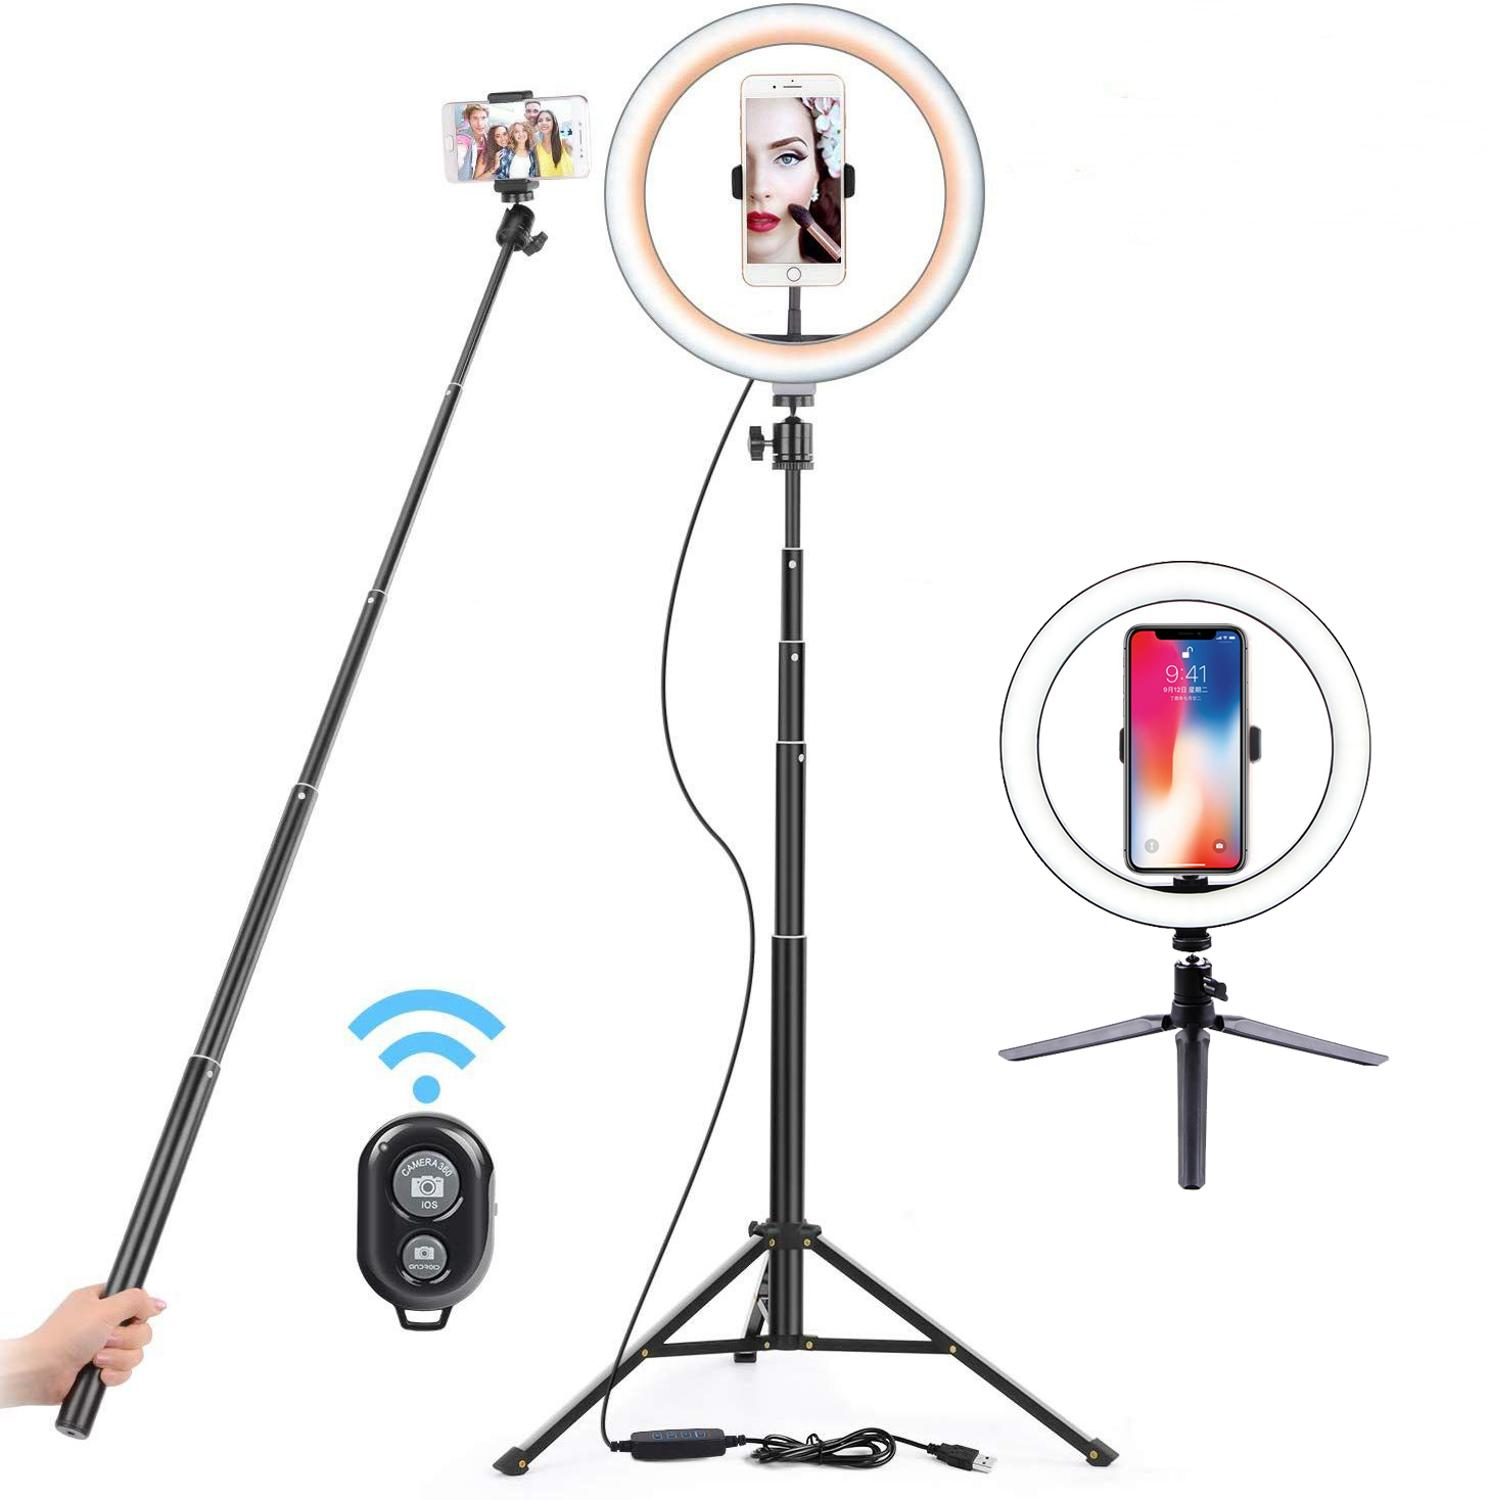 26cm USB LED Light Ring phone Photography Lamp With 130cm Selfie Stick Tripod Stand For Makeup Youtube VK Video Dimmable Light